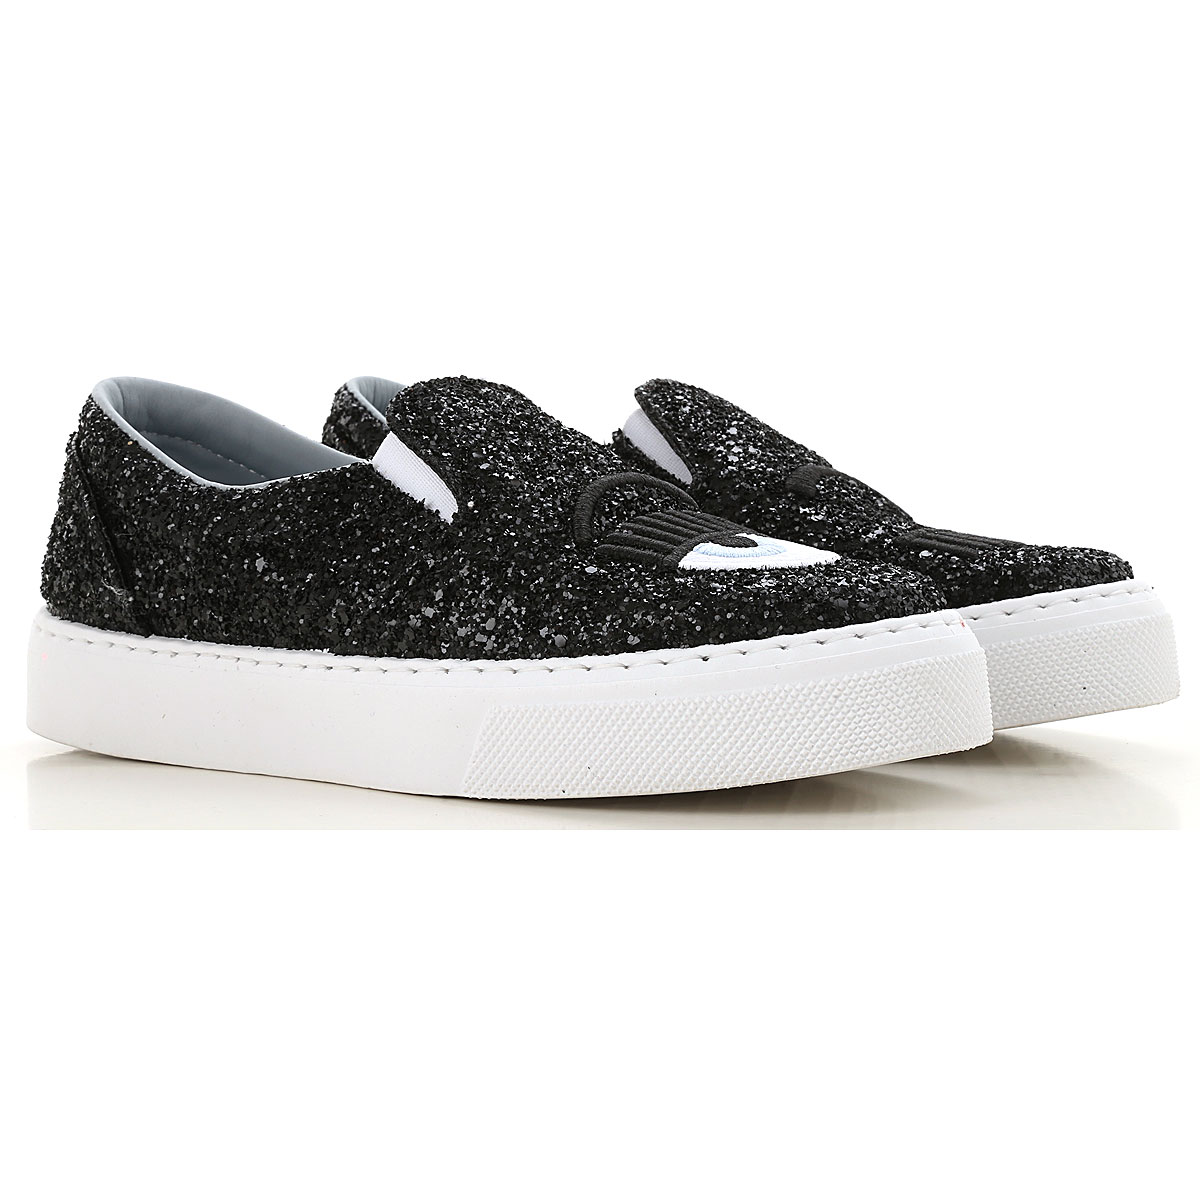 Image of Chiara Ferragni Kids Shoes for Girls, Black, Leather, 2017, 28 29 30 31 32 33 34 35 36